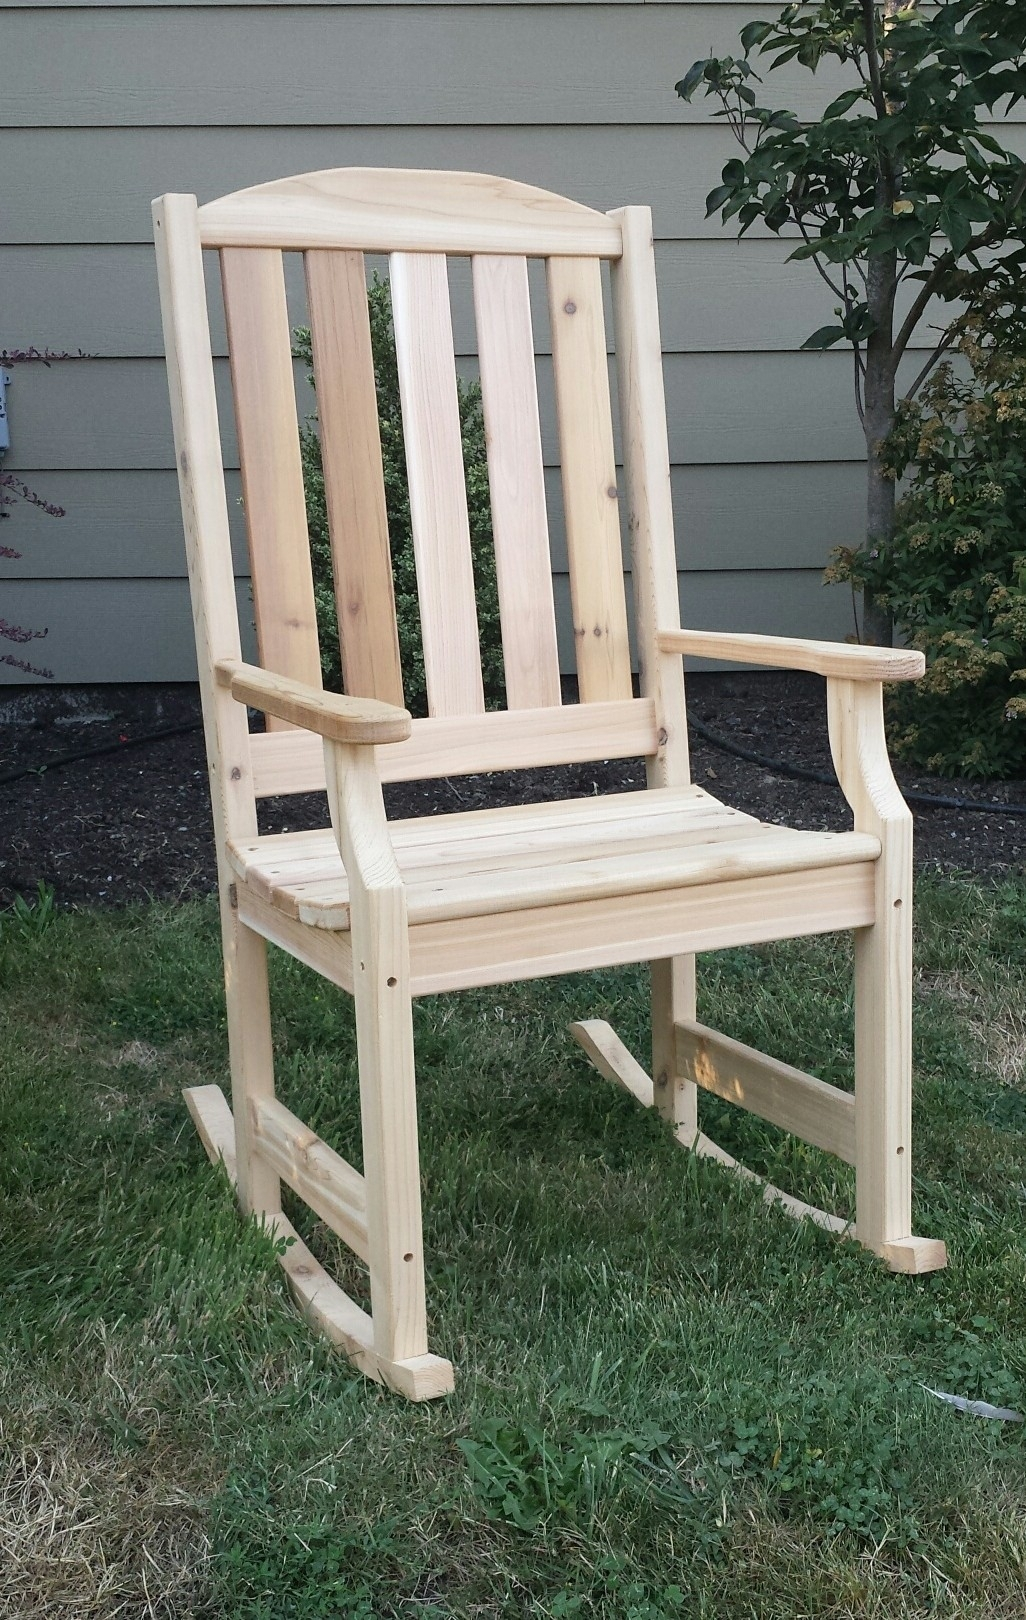 Chair | Patio Furniture Rocking Chair Painted Adirondack Chairs Throughout Rocking Chairs For Garden (#2 of 15)